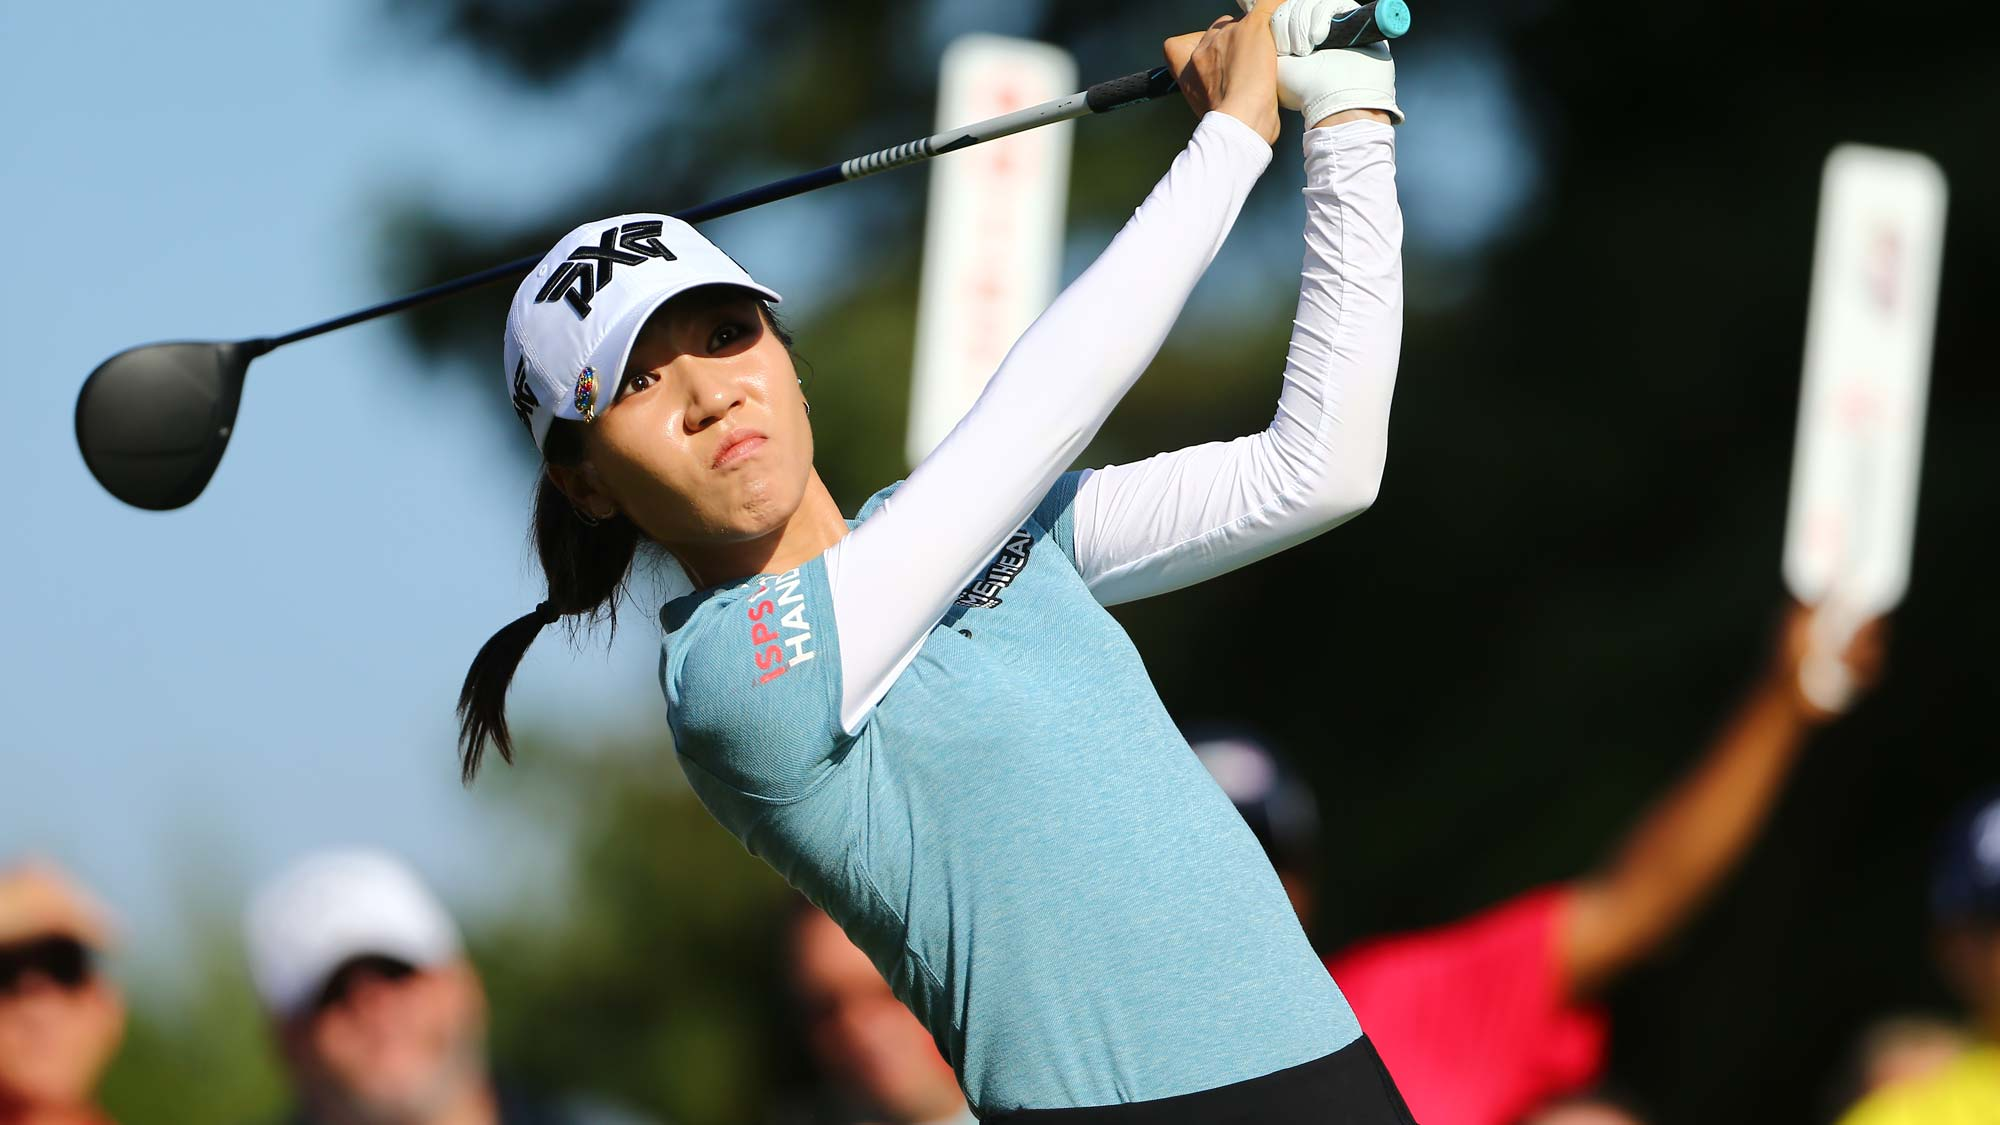 Lydia Ko of New Zealand watches her drive on the 10th hole during the first round of the Dow Great Lakes Bay Invitational